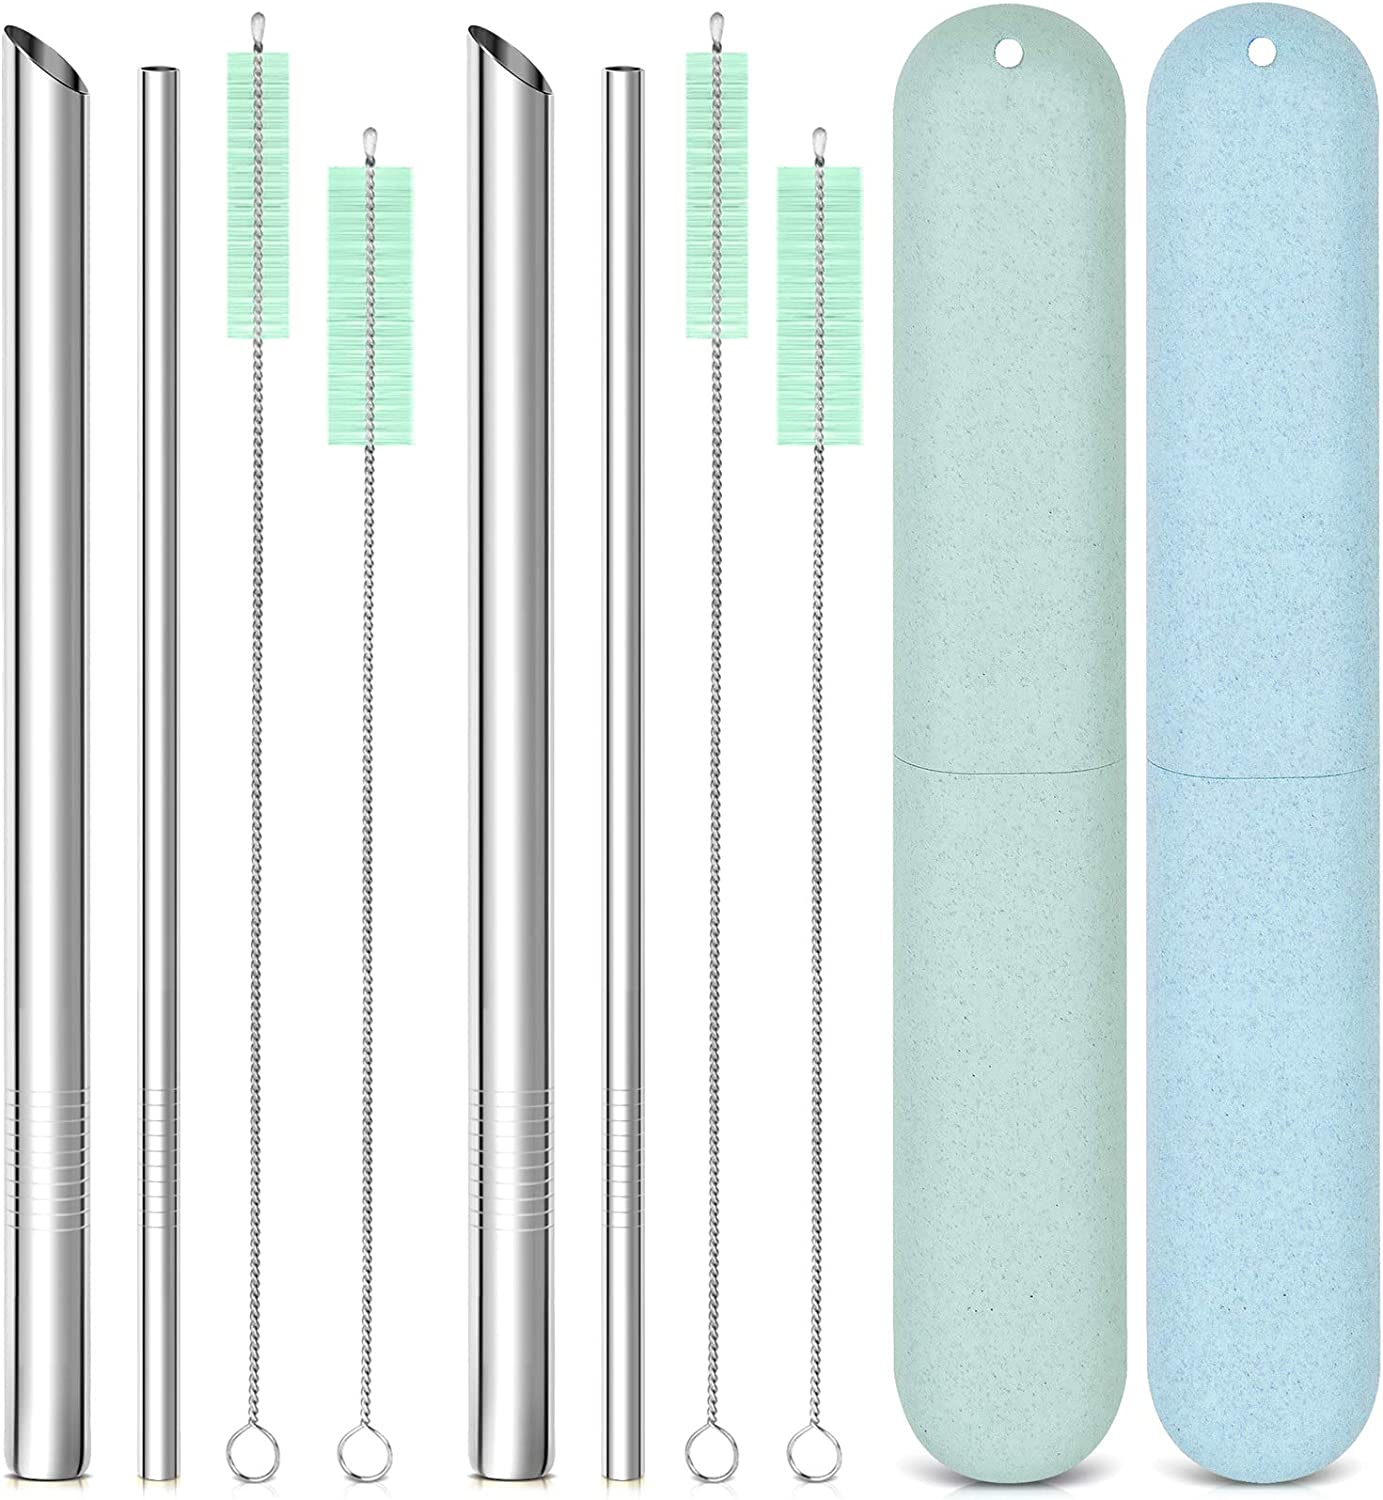 Reusable Metal Stainless Steel Straws: 2 Regular Metal Straws + 2 Metal Boba Straws + 2 Wheat Cases + 4 Cleaning Brushes + 1 Pouch, Portable for Personal Use, 8.5 inches (Blue&Green)